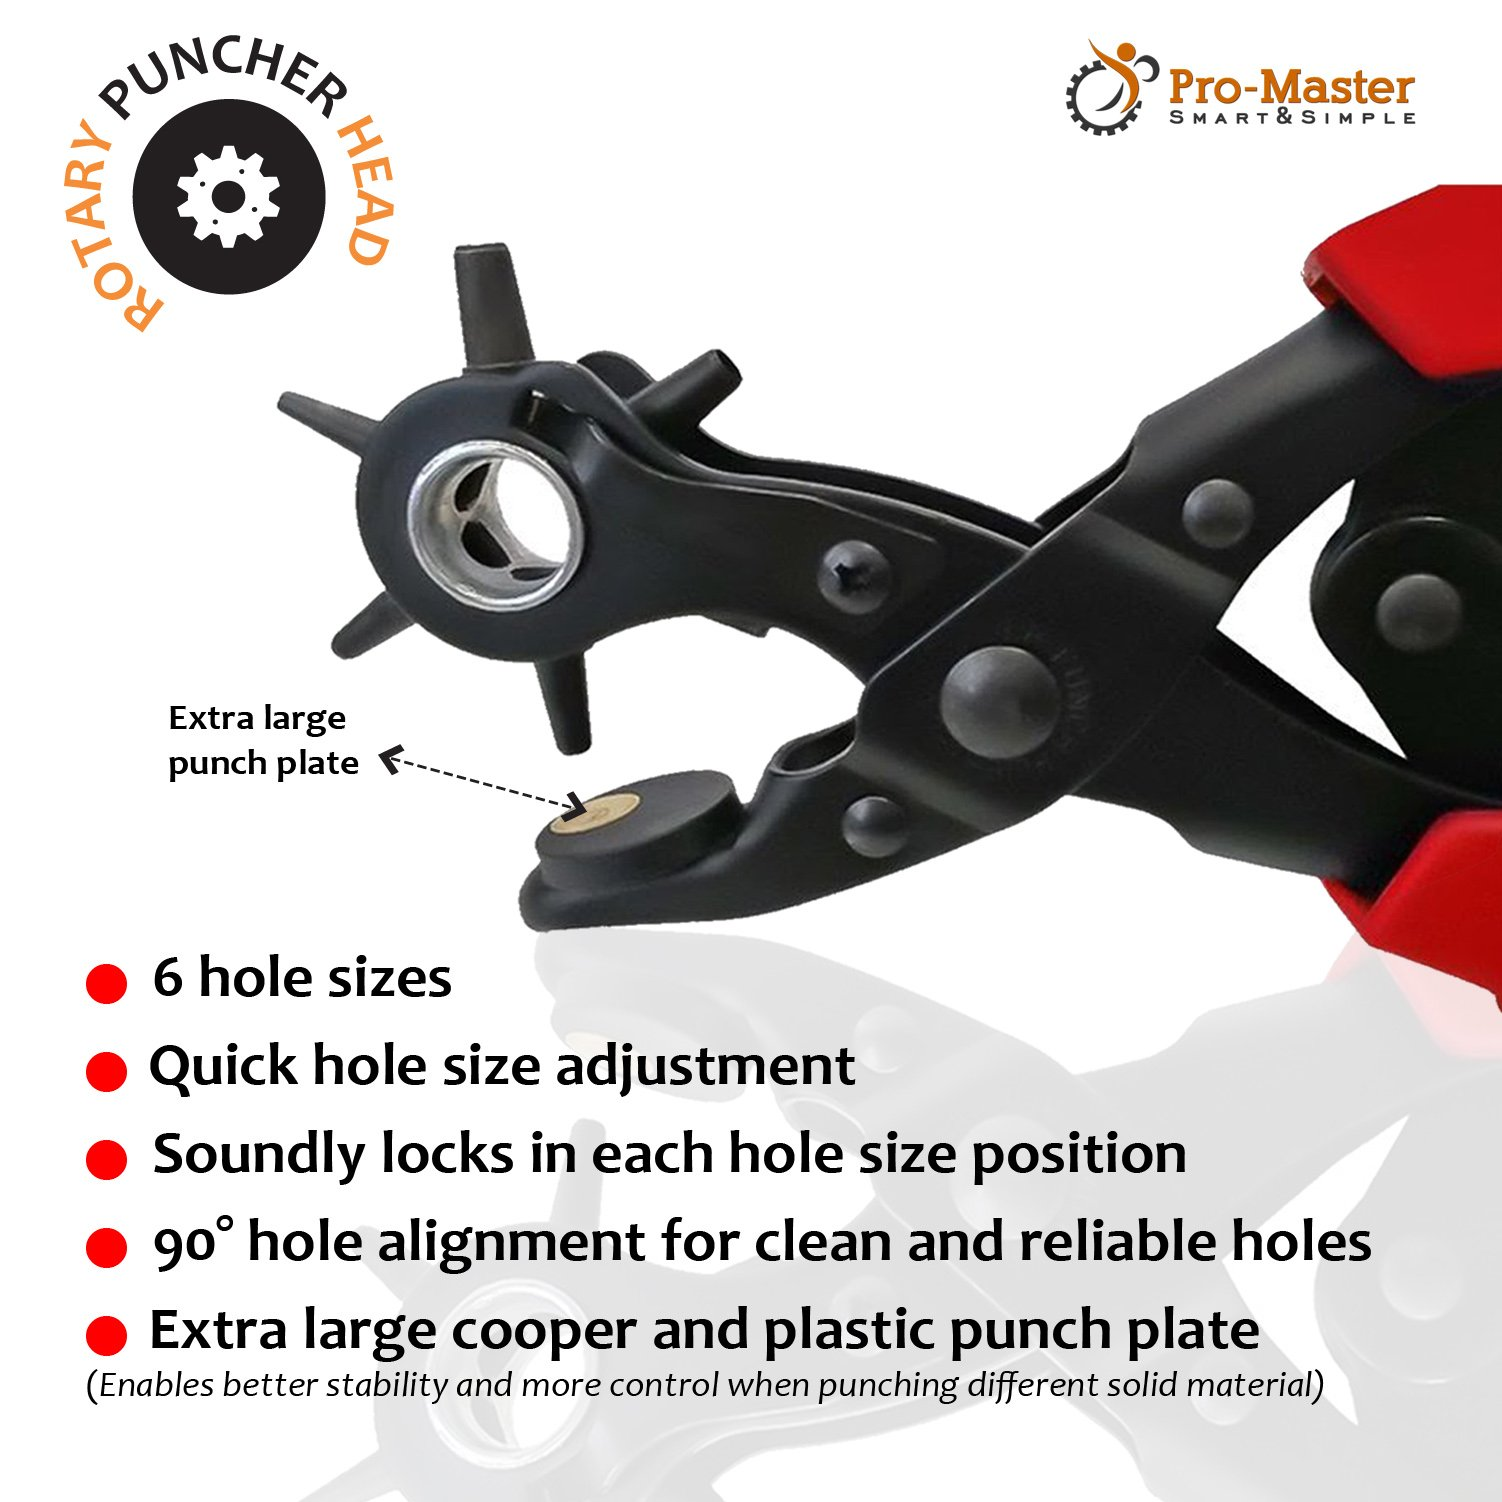 Best Leather Hole Punch Set for Belts, Watch Bands, Straps, Dog Collars, Saddles, Shoes, Fabric, DIY Home or Craft Projects. Super Heavy Duty Rotary Puncher, Multi Hole Sizes Maker Tool, 3 Yr Warranty by ProMaster (Image #4)